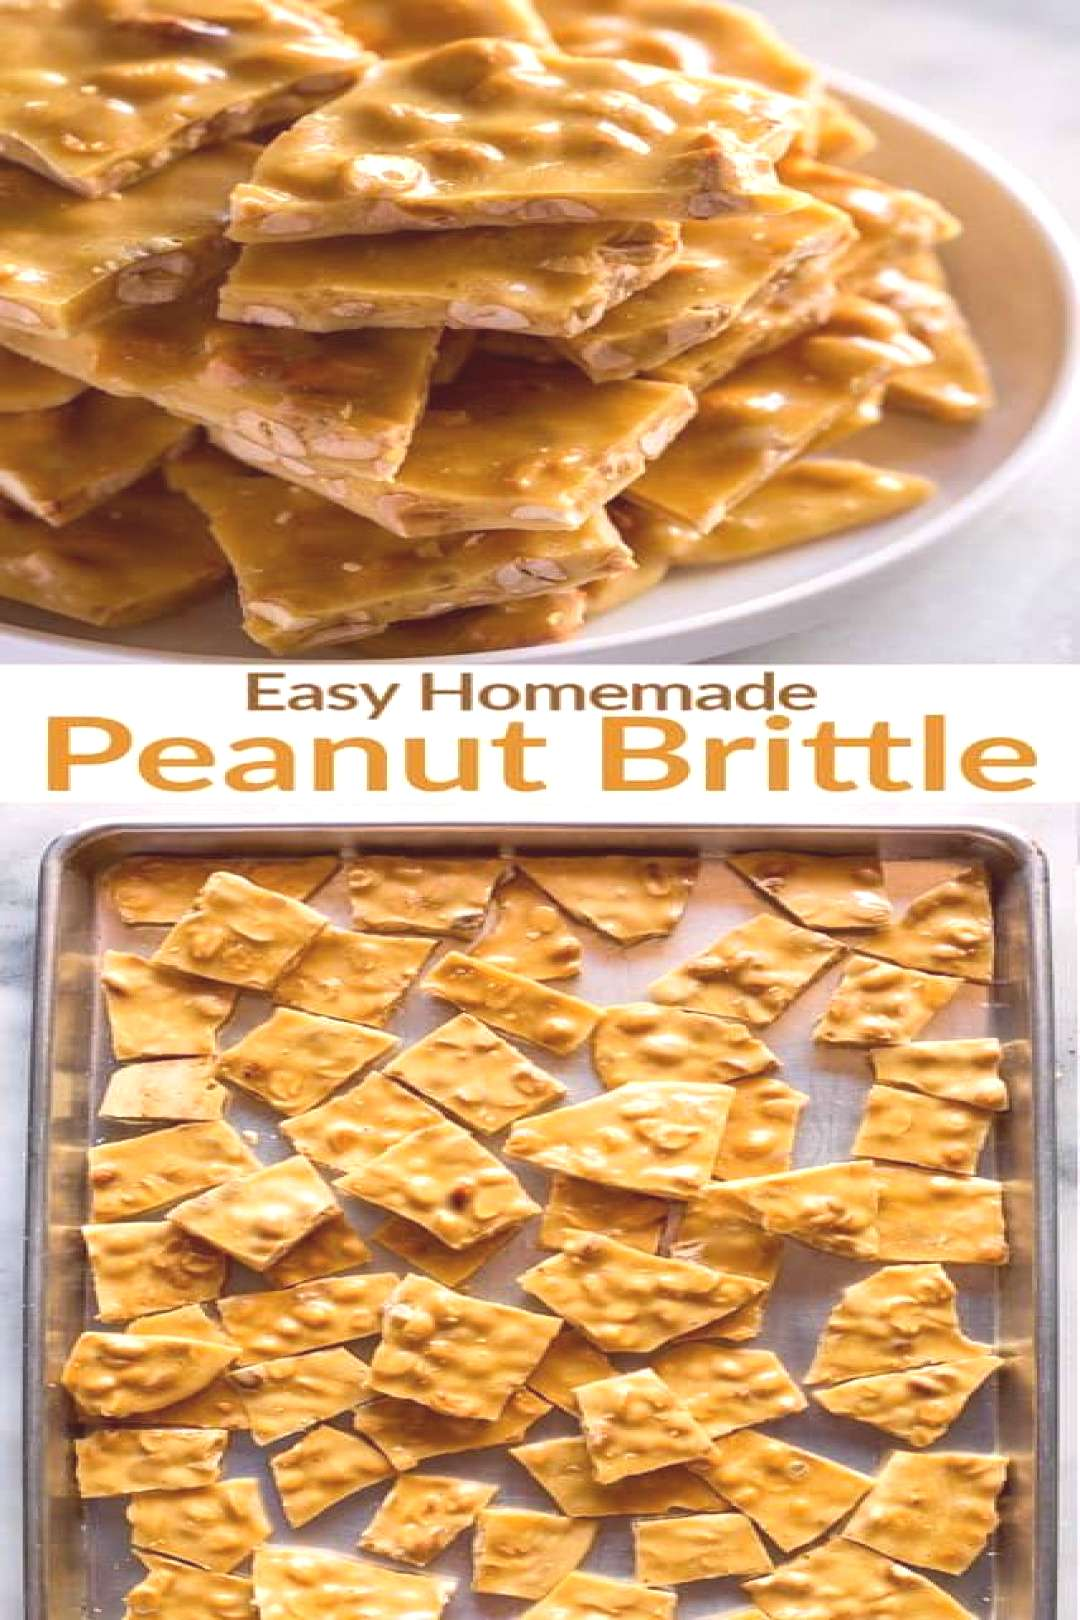 This easy homemade Peanut Brittle is an old-fashioned sweet, hard candy made on the stovetop with s